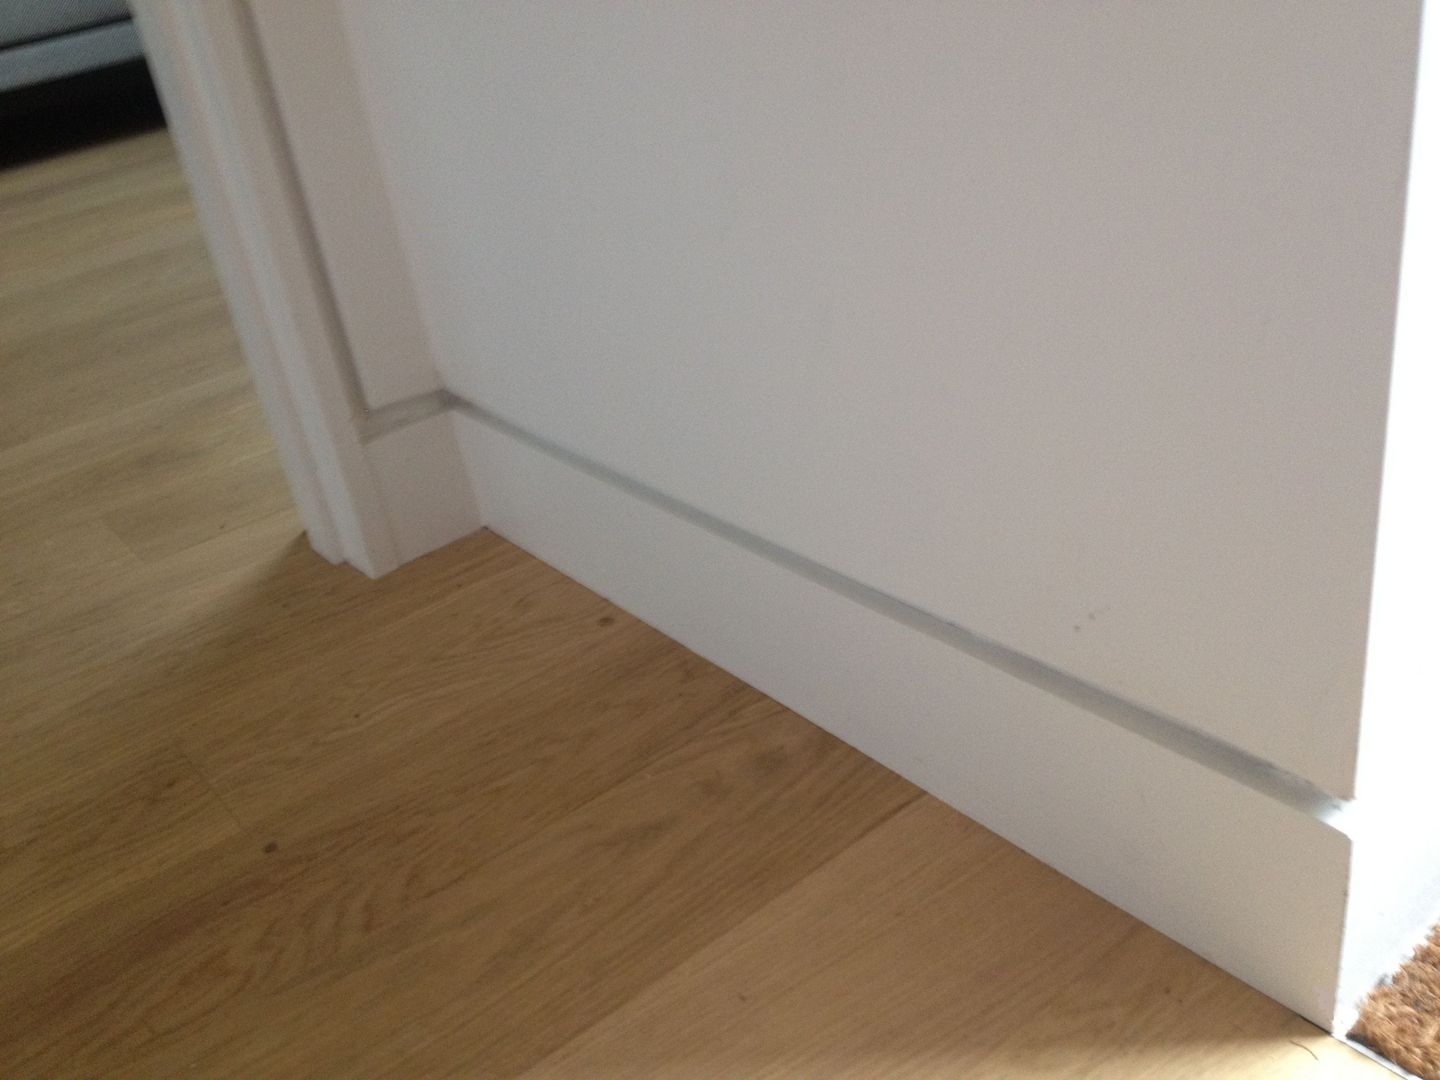 At Mccarran Handyman Services Our Qualified Painters Offer You The Best Baseboard Painting Services In Las Vegas Baseboard Styles Modern Baseboards Floor Trim